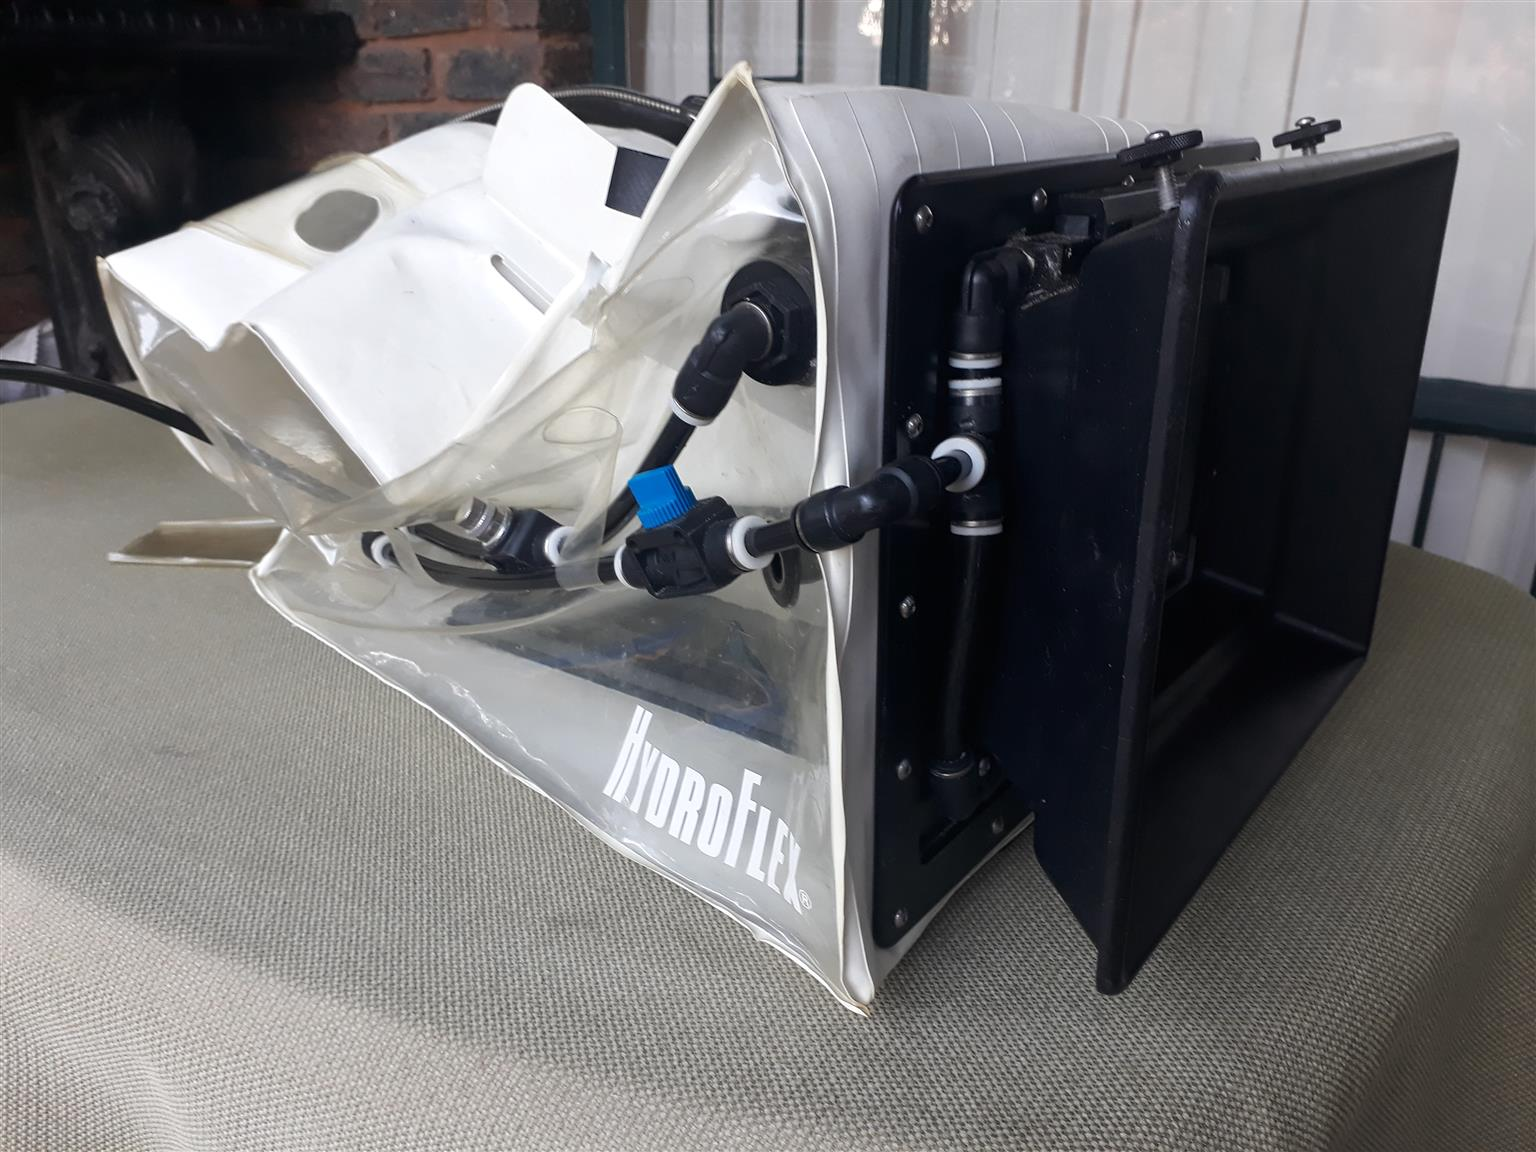 Repairs to submersible Hydroflex housing for professional cinematography camera